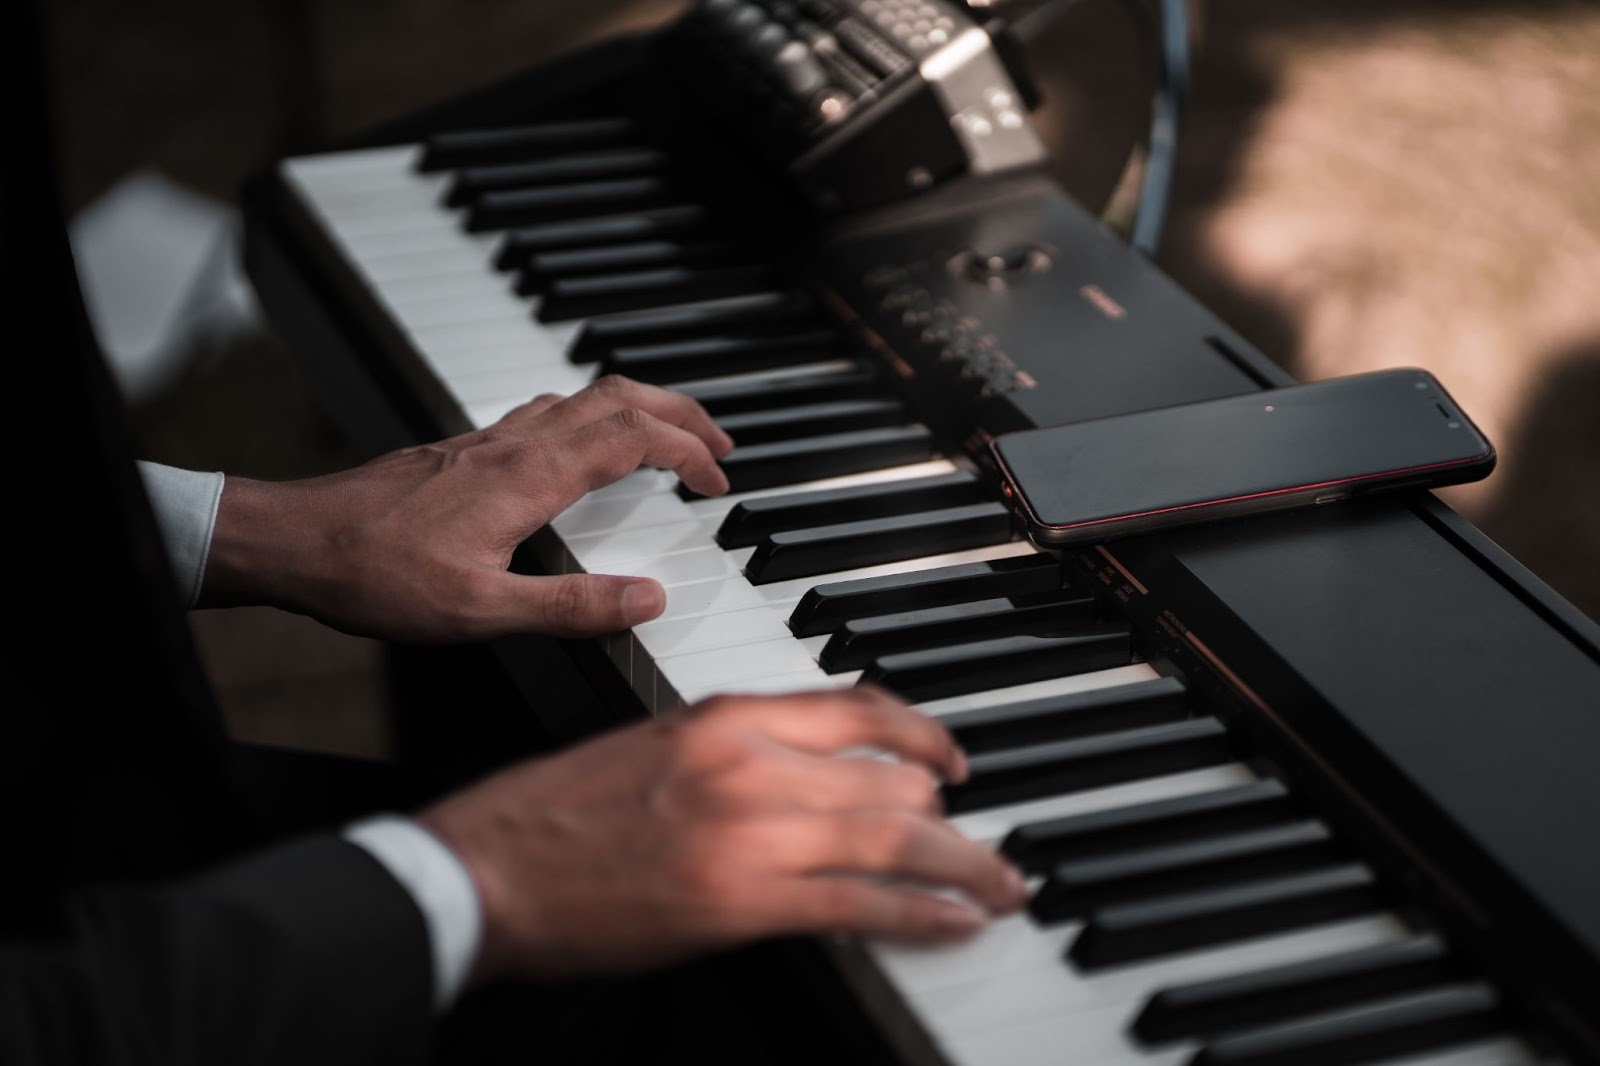 Learn Piano in 6 months